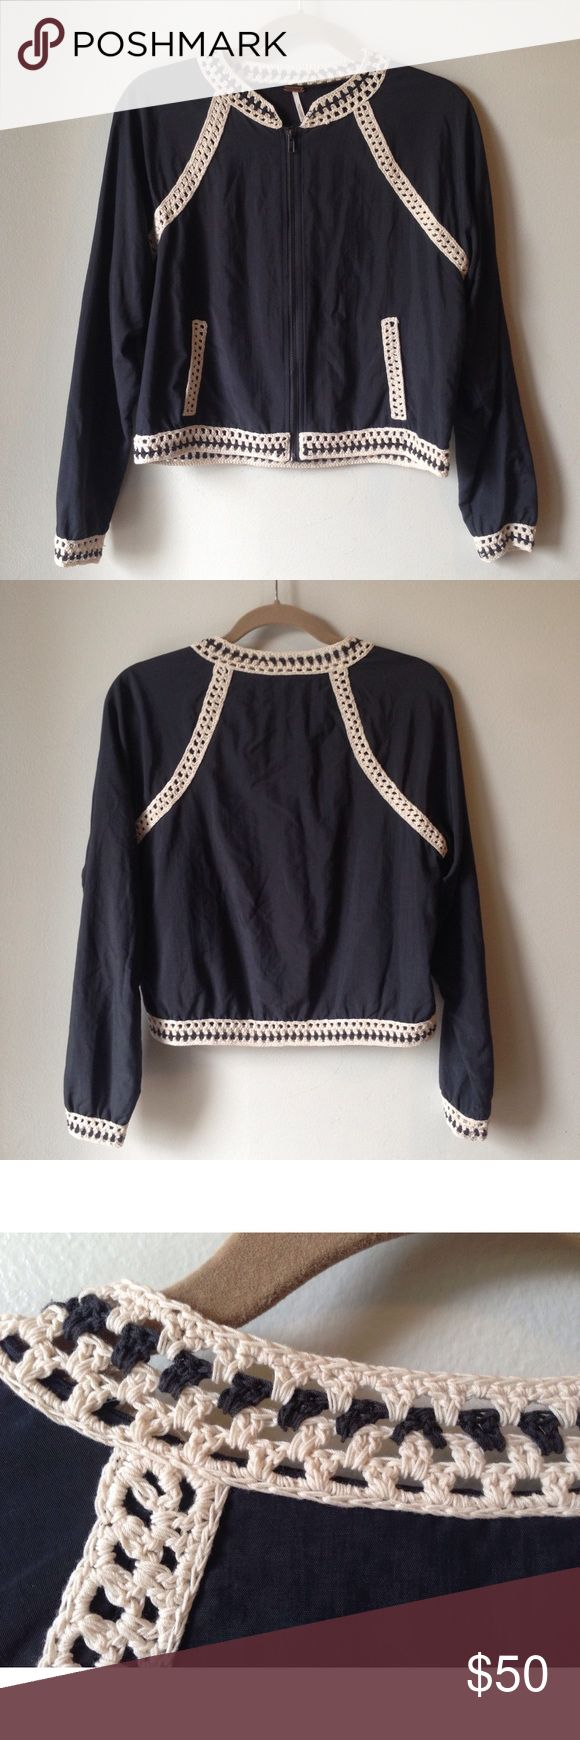 // FREE PEOPLE Jacket with Crochet Trim // Free People baseball / bomber jacket with crochet trim. Cute jacket with eye catching detail. The cream just pops! Used but in great condition. Made of 100% Nylon, this is a great piece for spring!  • Size Medium • Color is an off black almost has a drop of Navy Free People Jackets & Coats